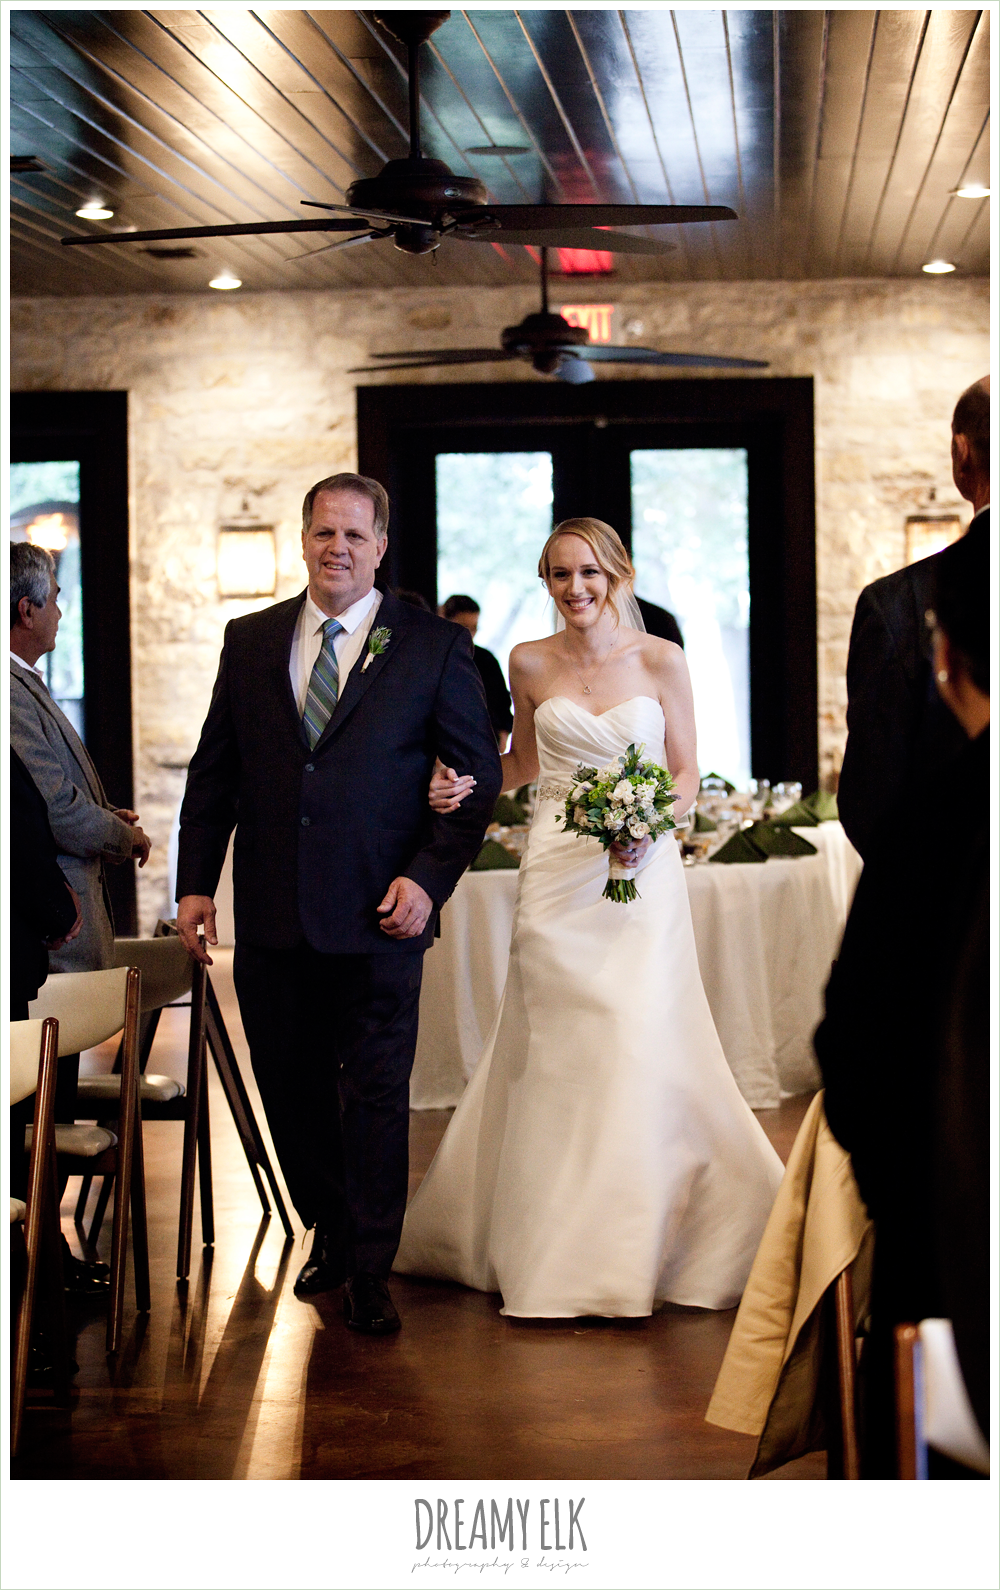 bride and dad walking down the aisle, winter vineyard wedding, dreamy elk photography and design